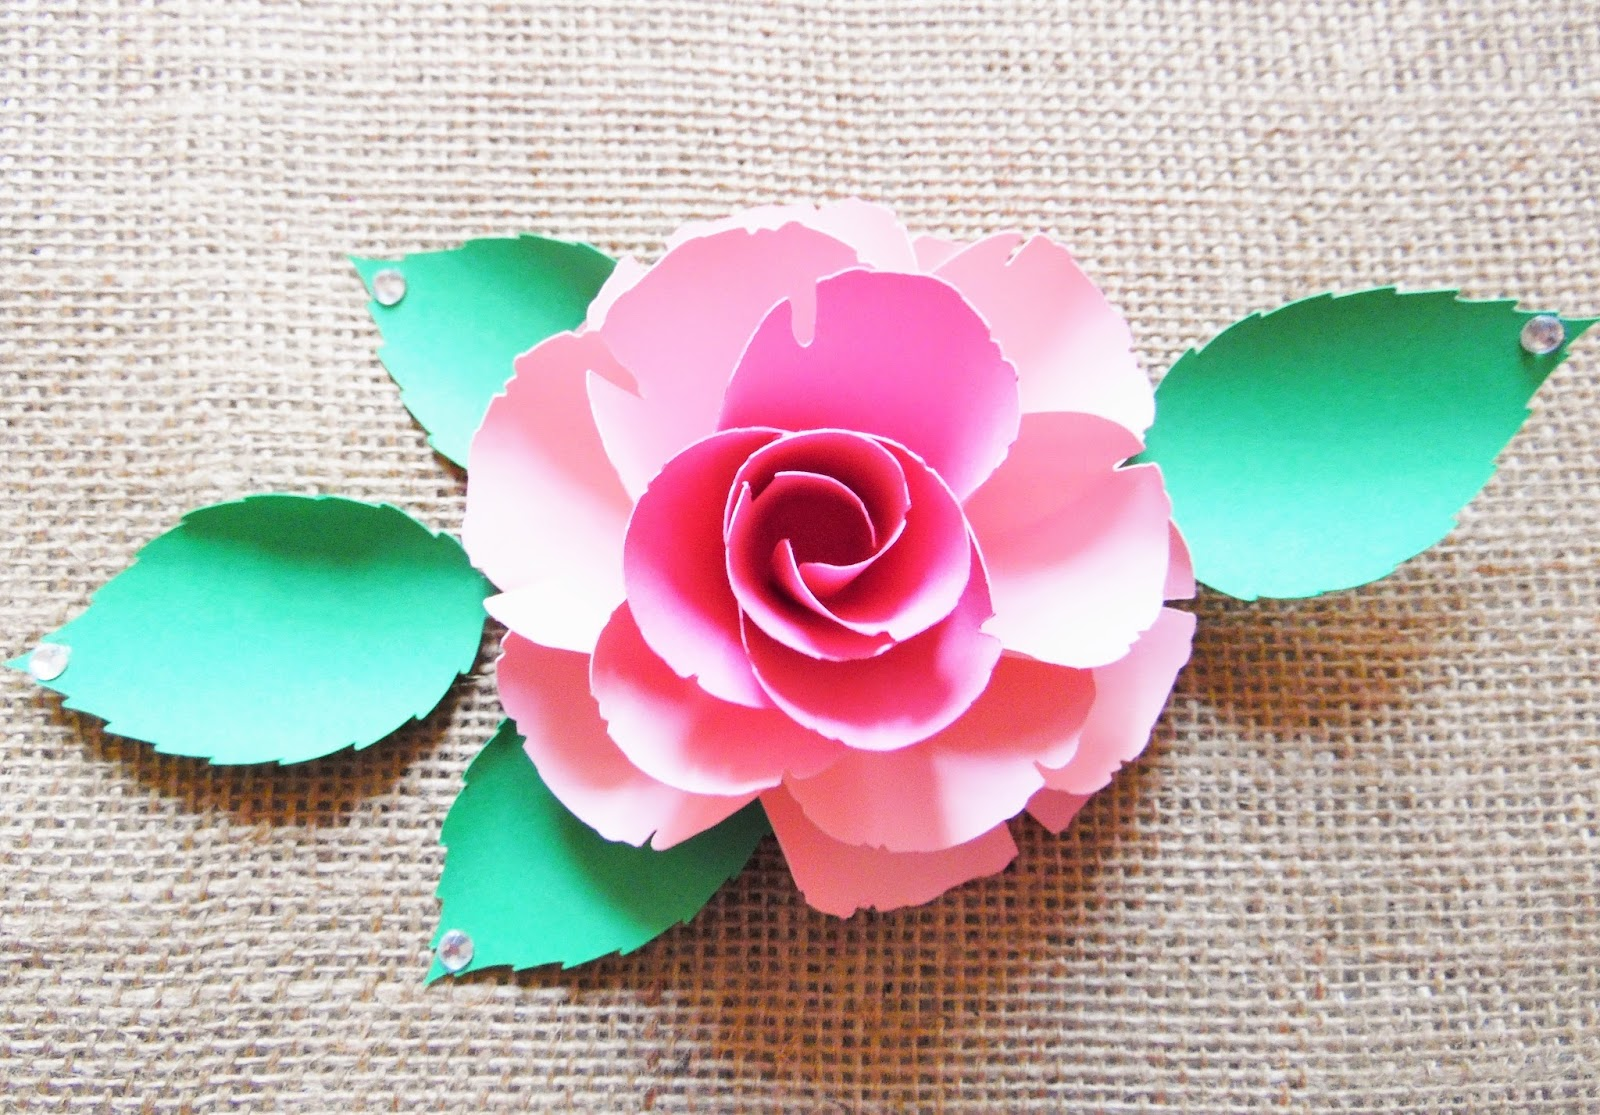 In a bed of paper roses how to make easy diy paper roses abbi ruby rose mightylinksfo Gallery